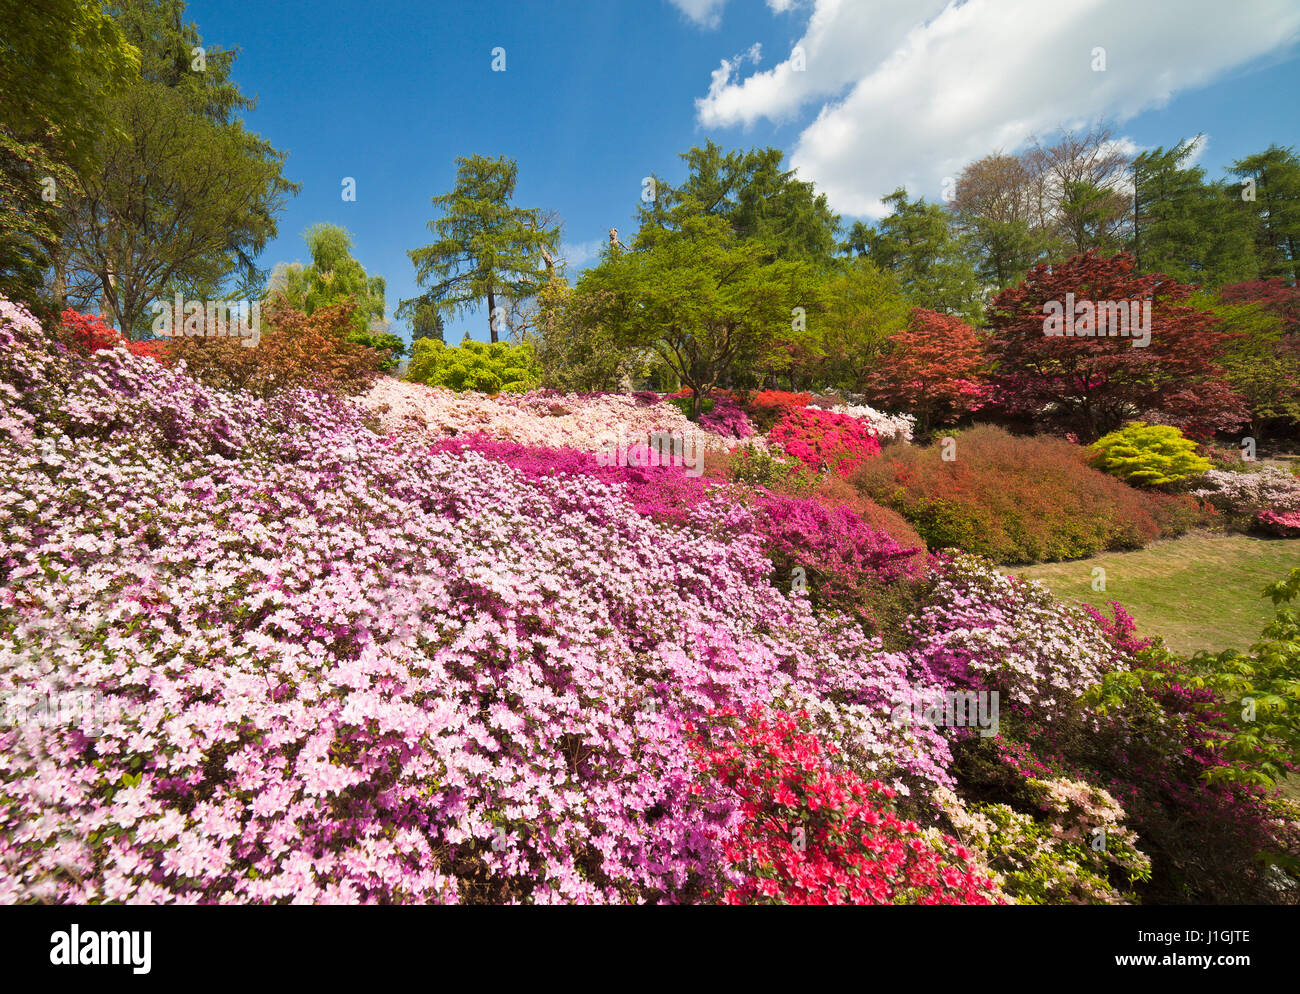 The Punch Bowl Azaleas at Virginia Water. - Stock Image